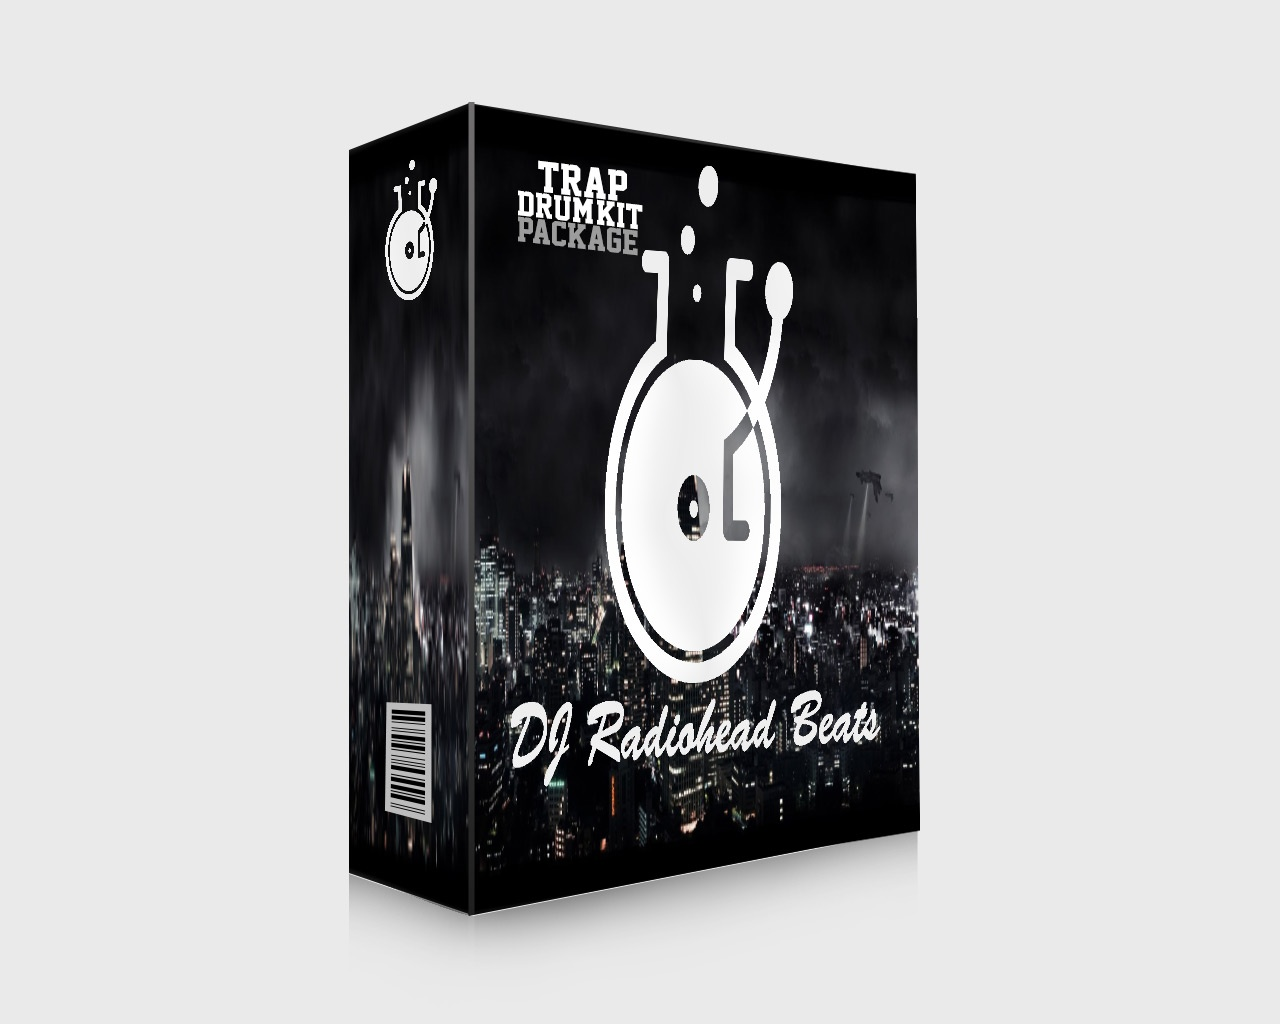 Official Trap Drumkit Package